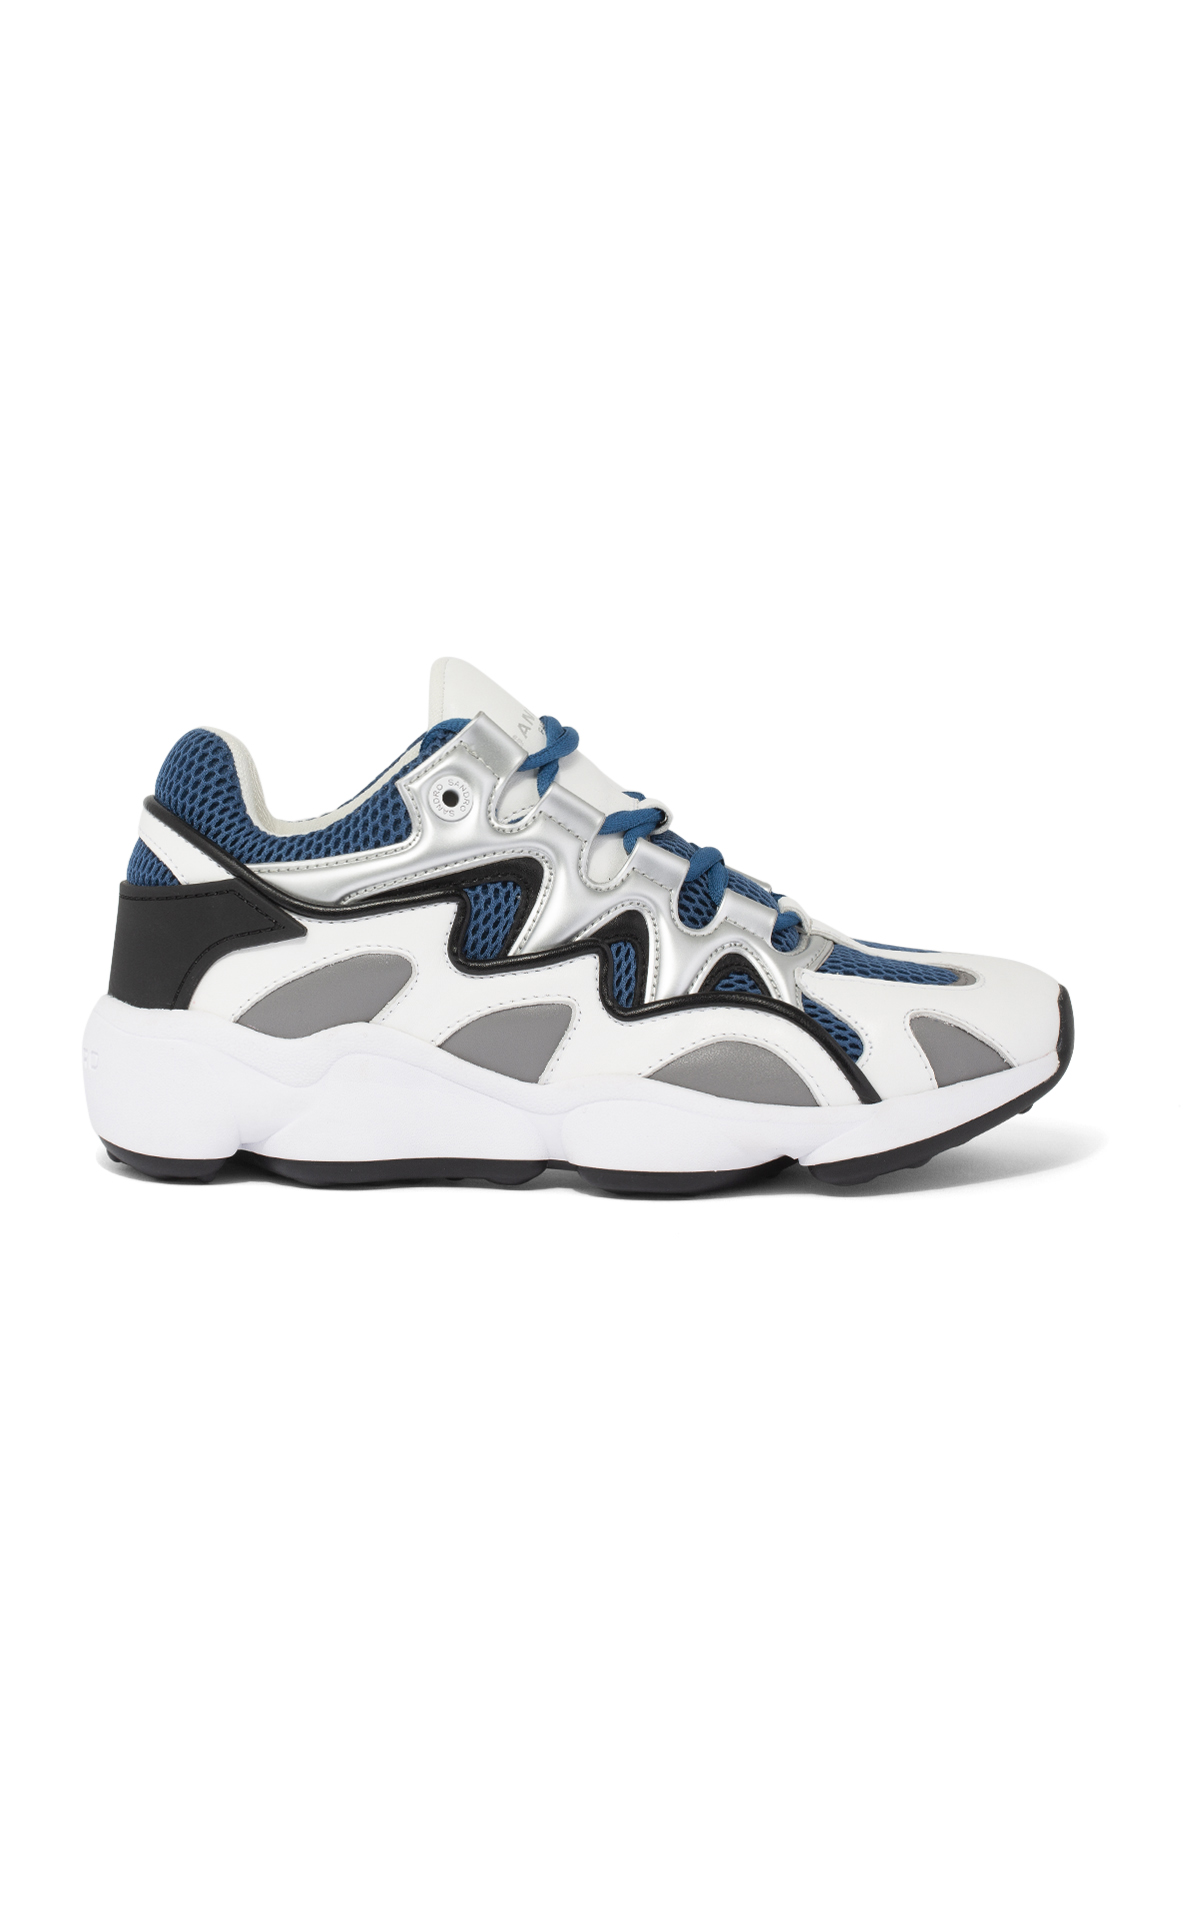 Sandro Blue Atomic sneakers